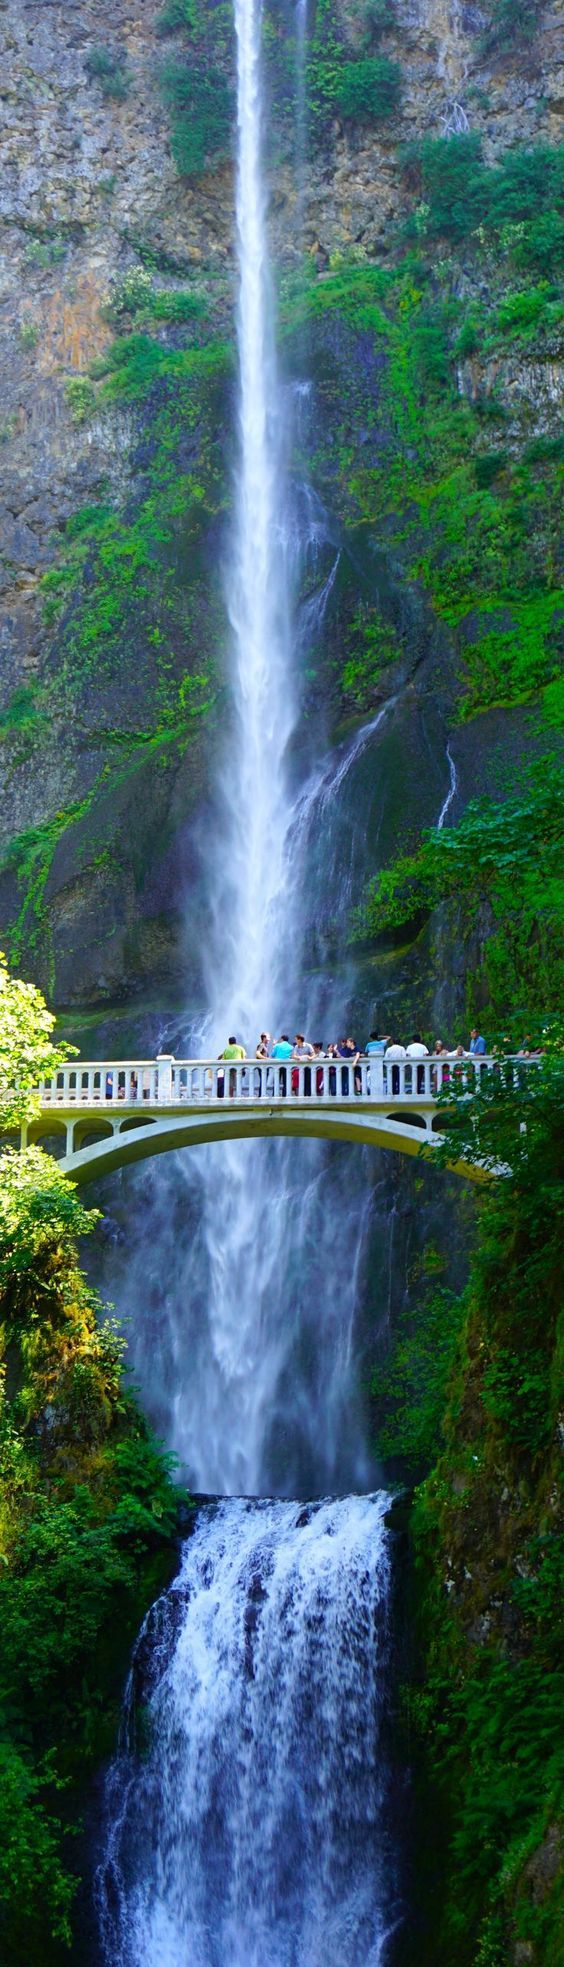 Multnomah Falls, Columbia River Gorge | Oregon, USA